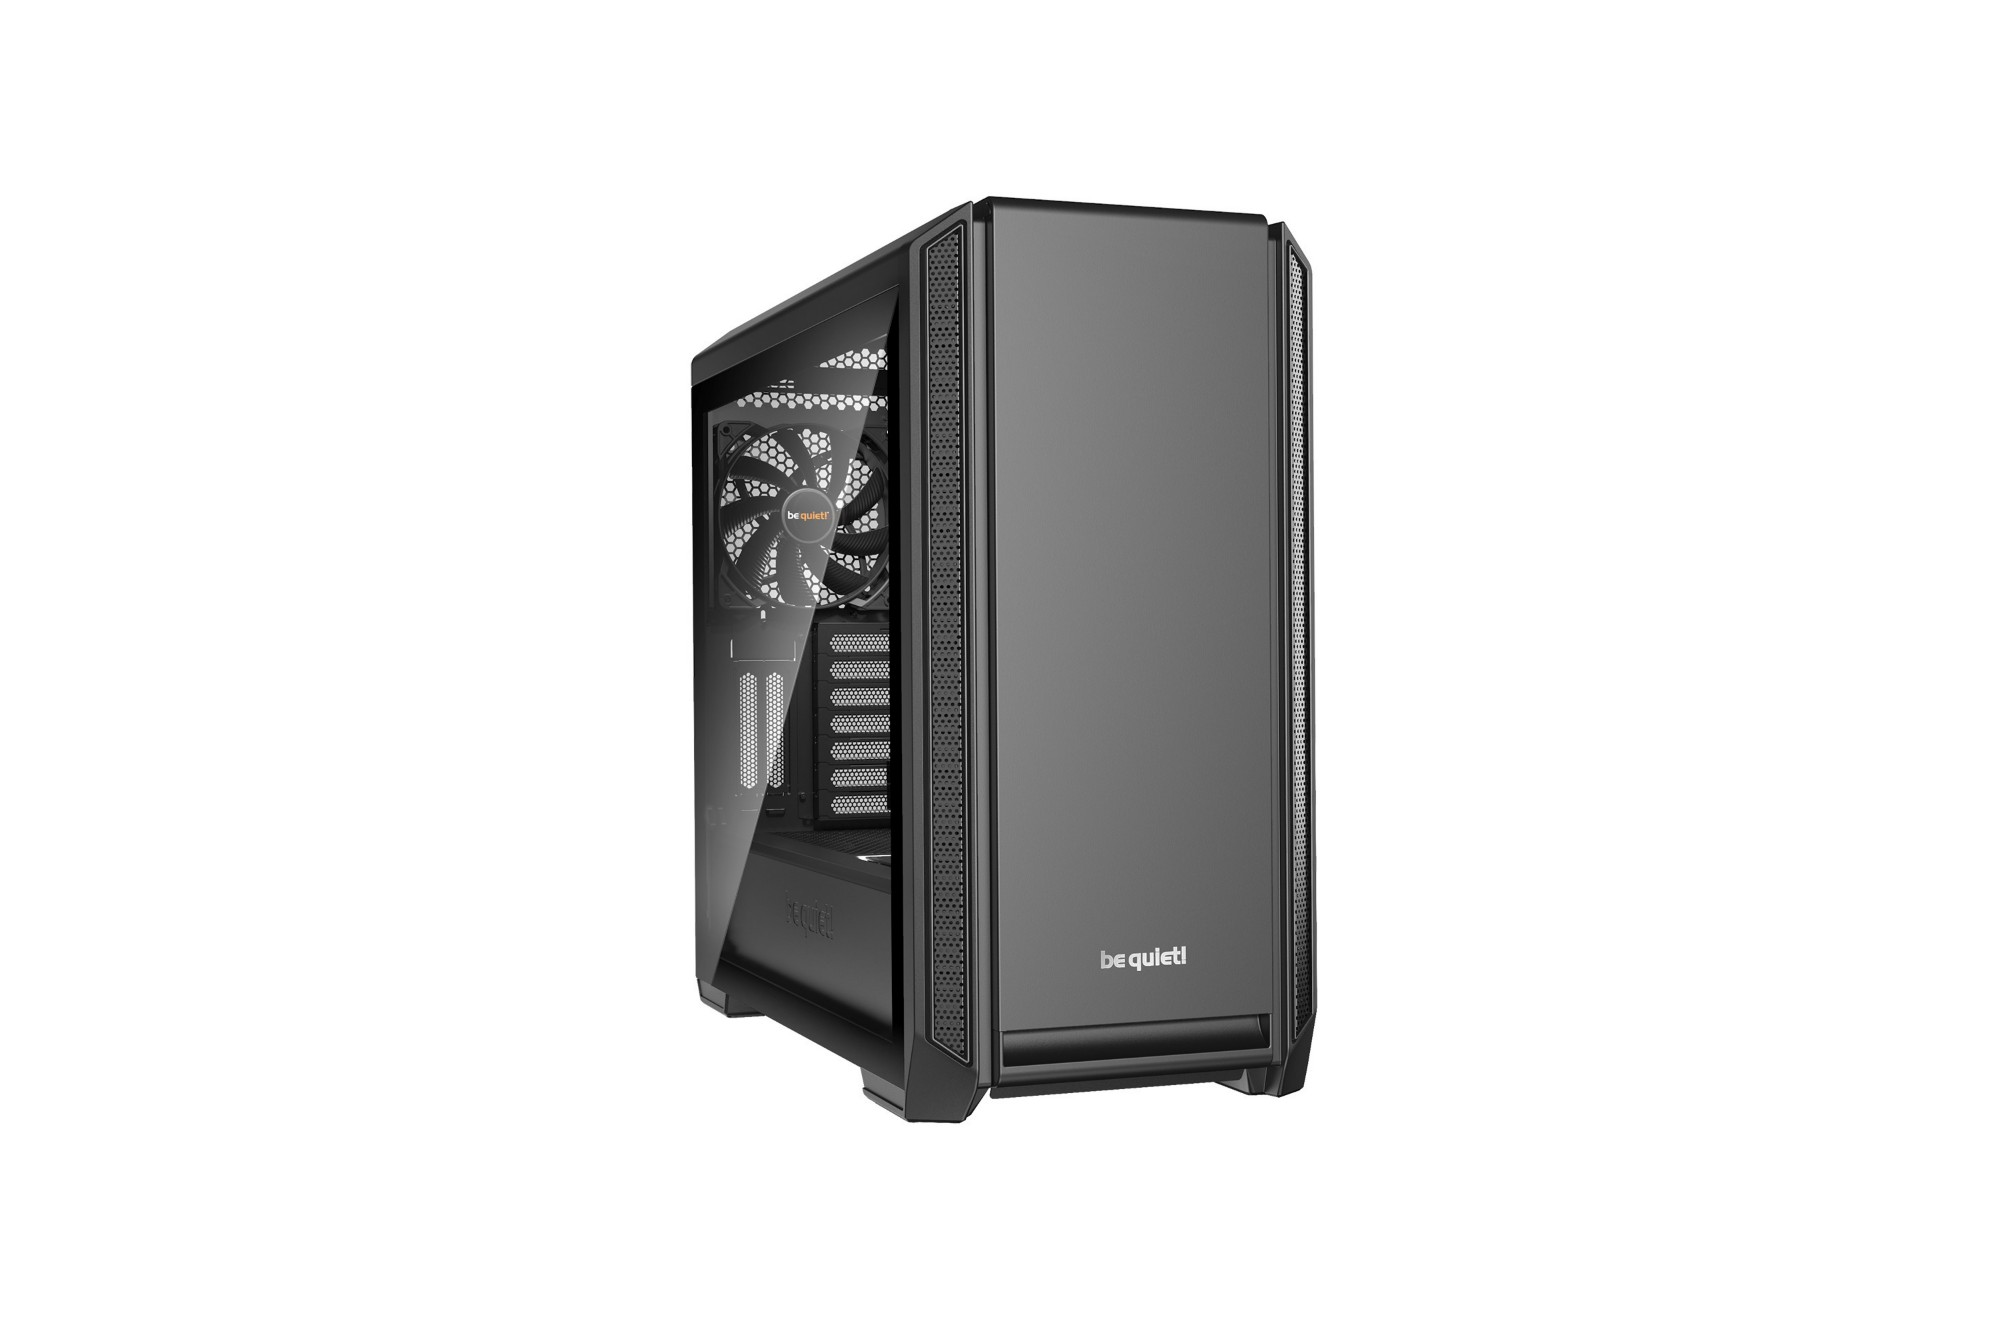 BE QUIET! BGW26 SILENT BASE 601 WINDOW COMPUTER CASE MIDI-TOWER BLACK